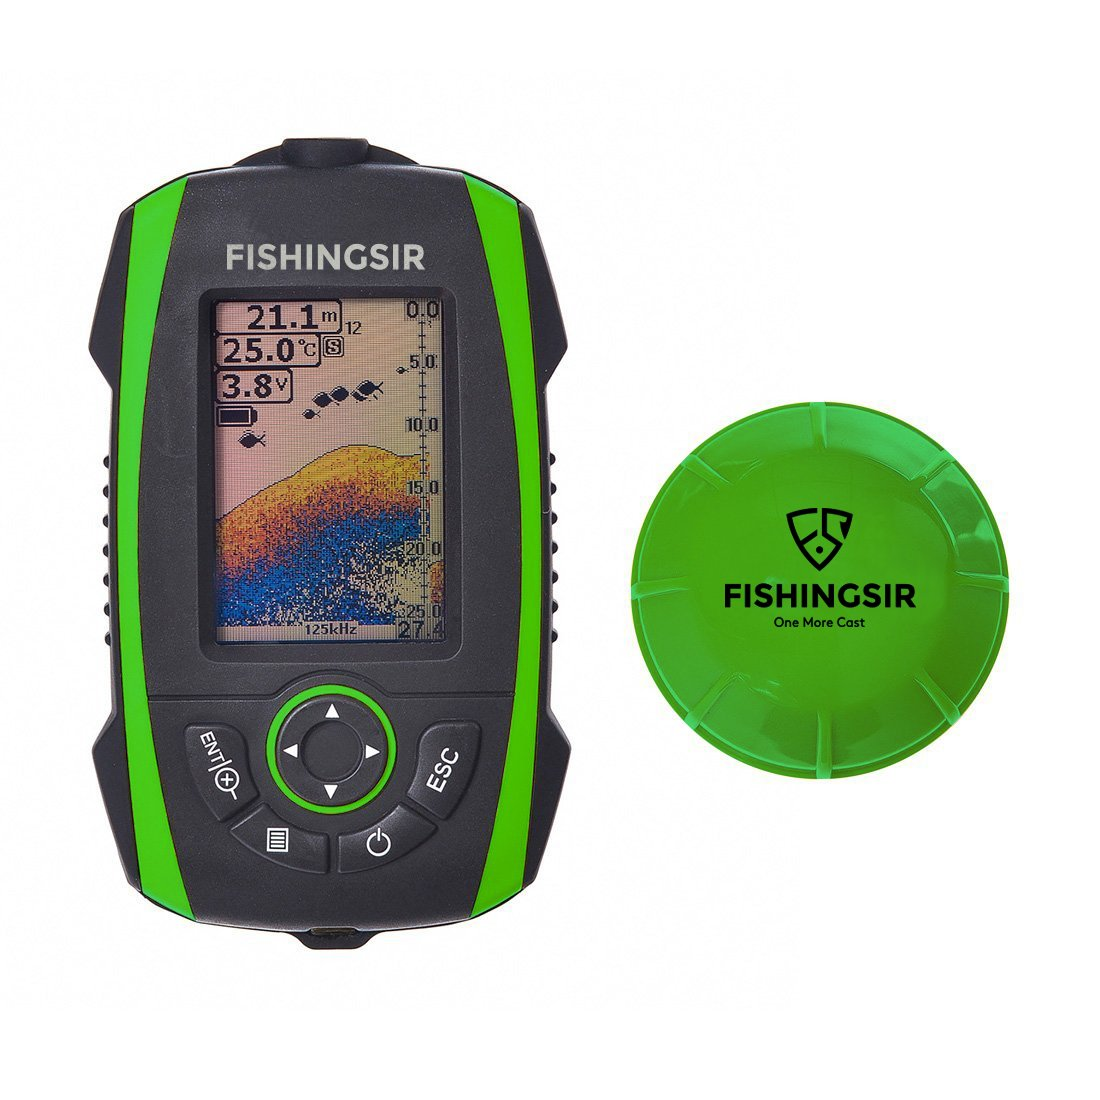 FISHINGSIR Wireless Portable Fish Finder Depth Finder Fishfinder with Sonar Sensor Transducer and 100M LCD colors Display by FISHINGSIR